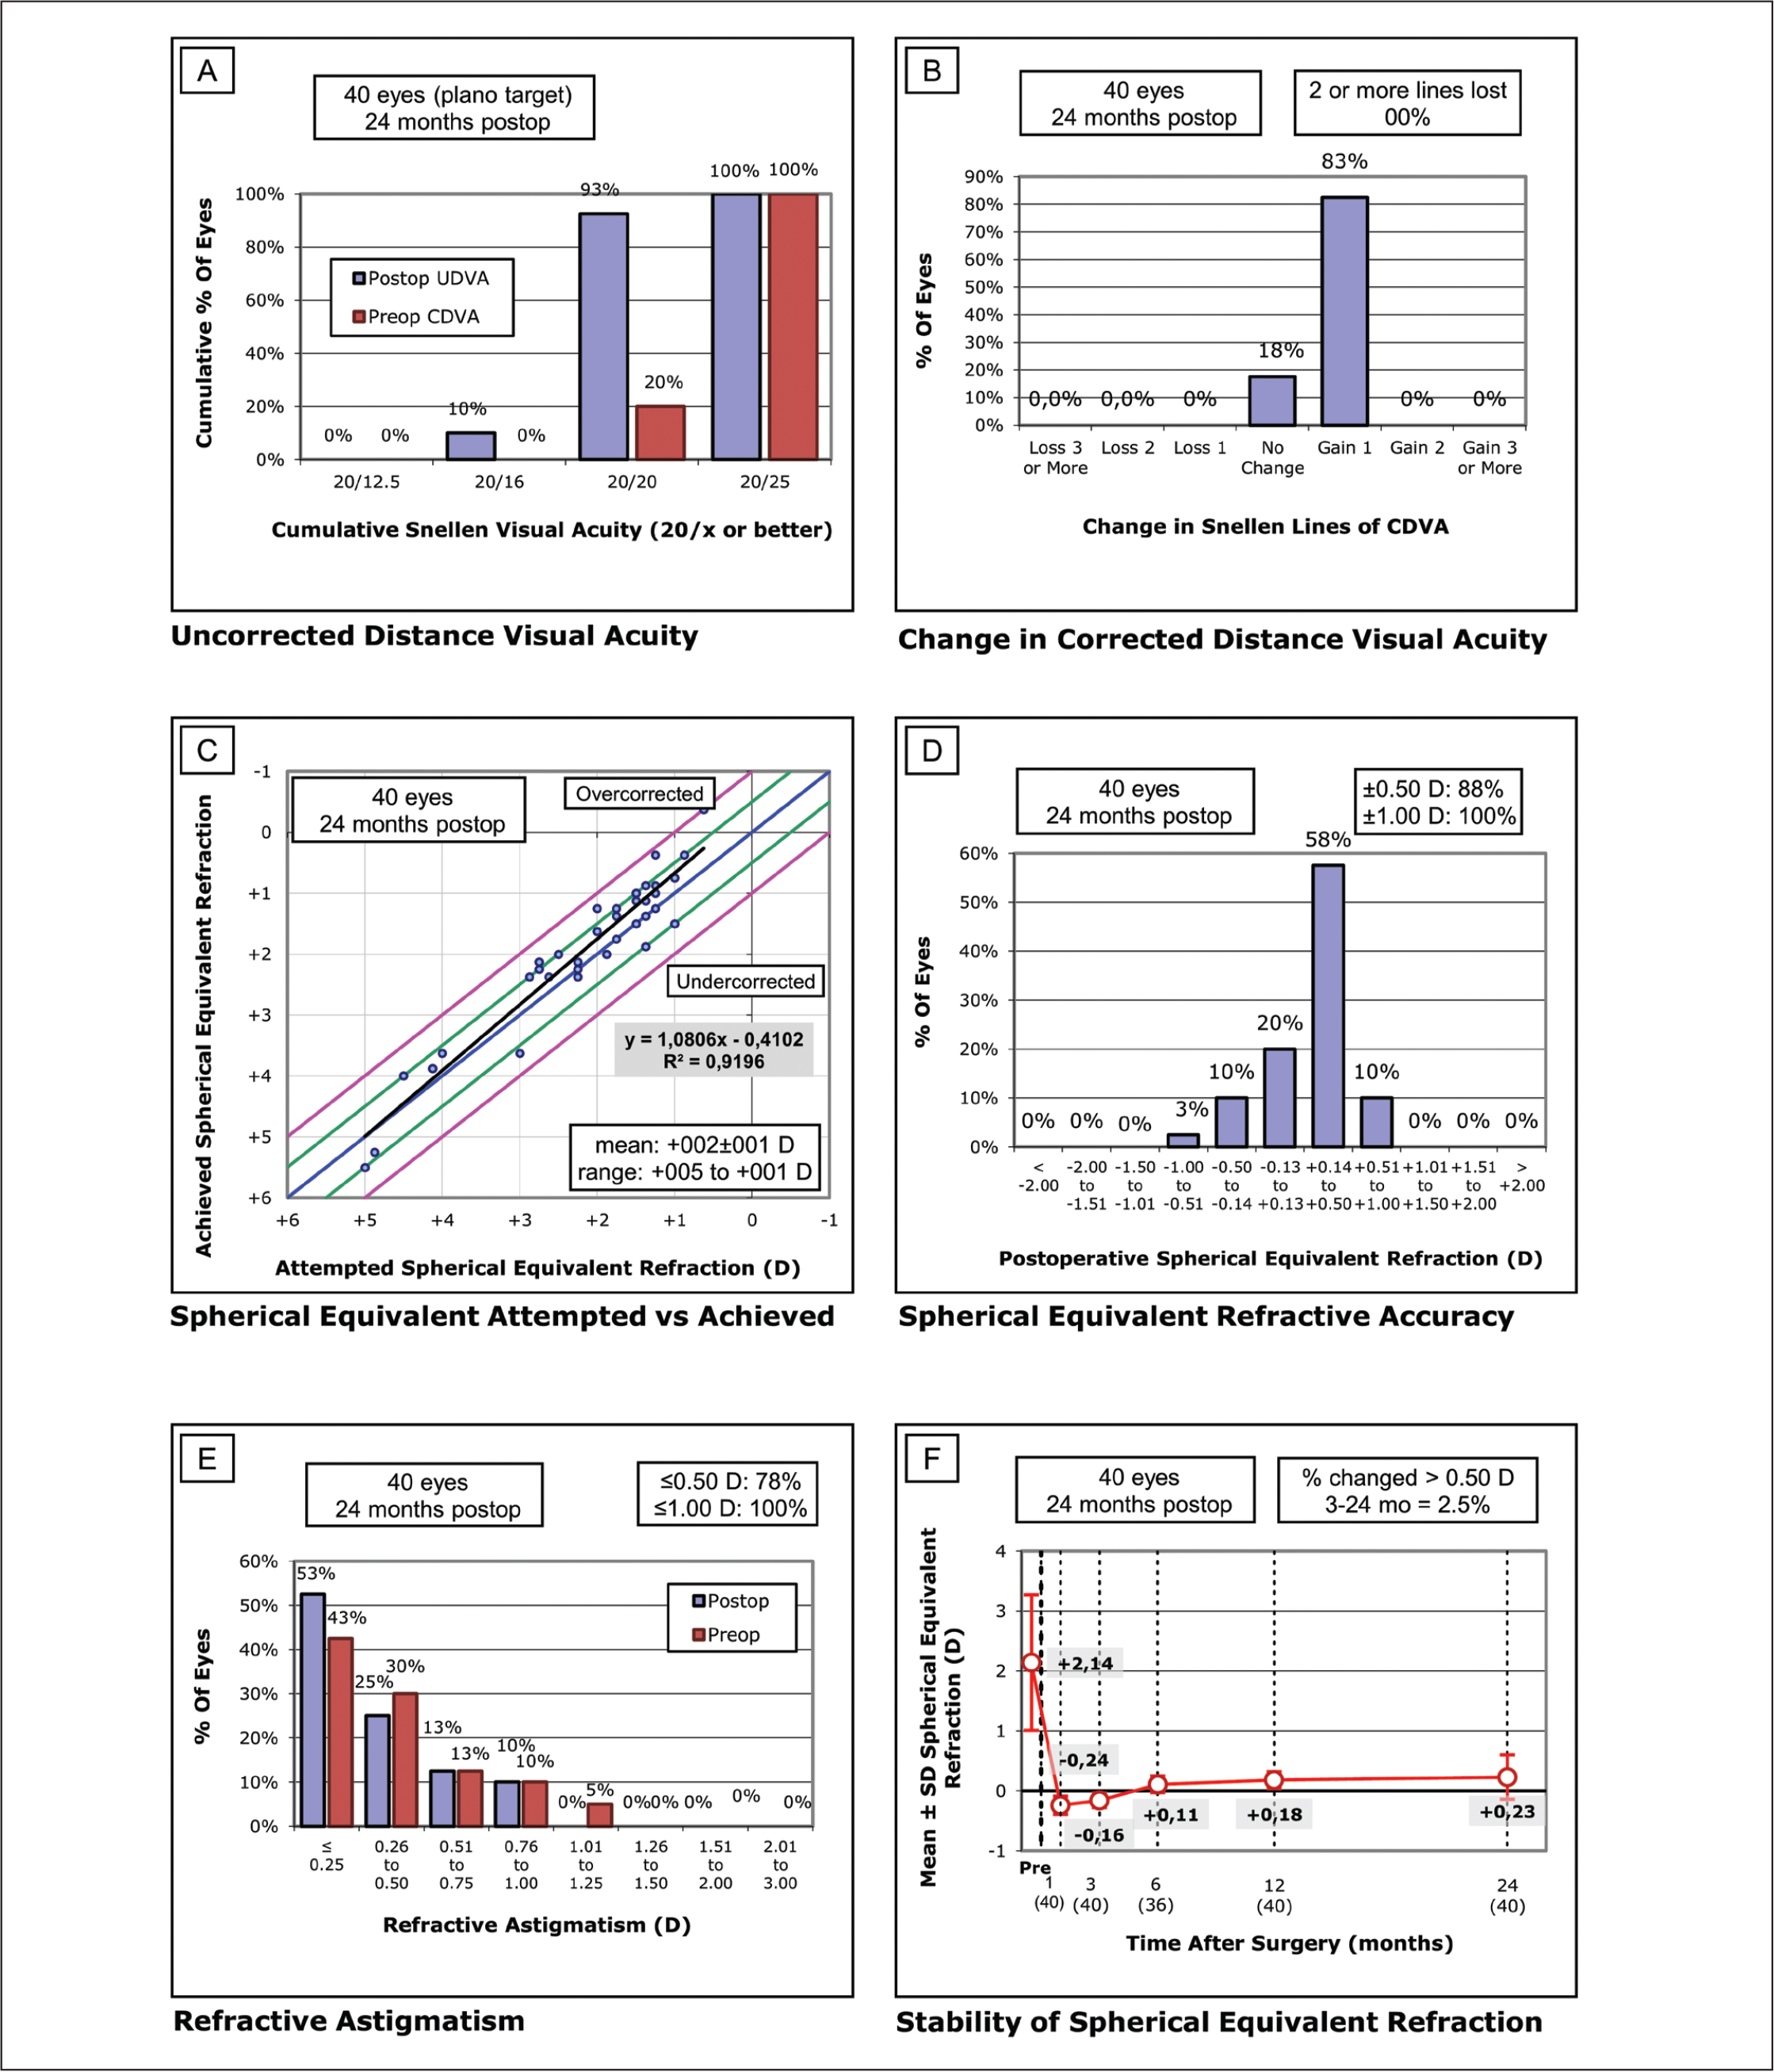 PROSCAN (Bausch & Lomb Technolas, Munich, Germany) (dominant eye) standard graphs for reporting refractive surgery. (A) Uncorrected distance visual acuity (UDVA): efficacy histogram. (B) Change in corrected distance visual acuity (CDVA): safety histogram. (C) Spherical equivalent attempted versus achieved. (D) Spherical equivalent refractive accuracy. (E) Refractive astigmatism. C, D, and E graphs represent predictability. (F) Stability of spherical equivalent refraction. D = diopters